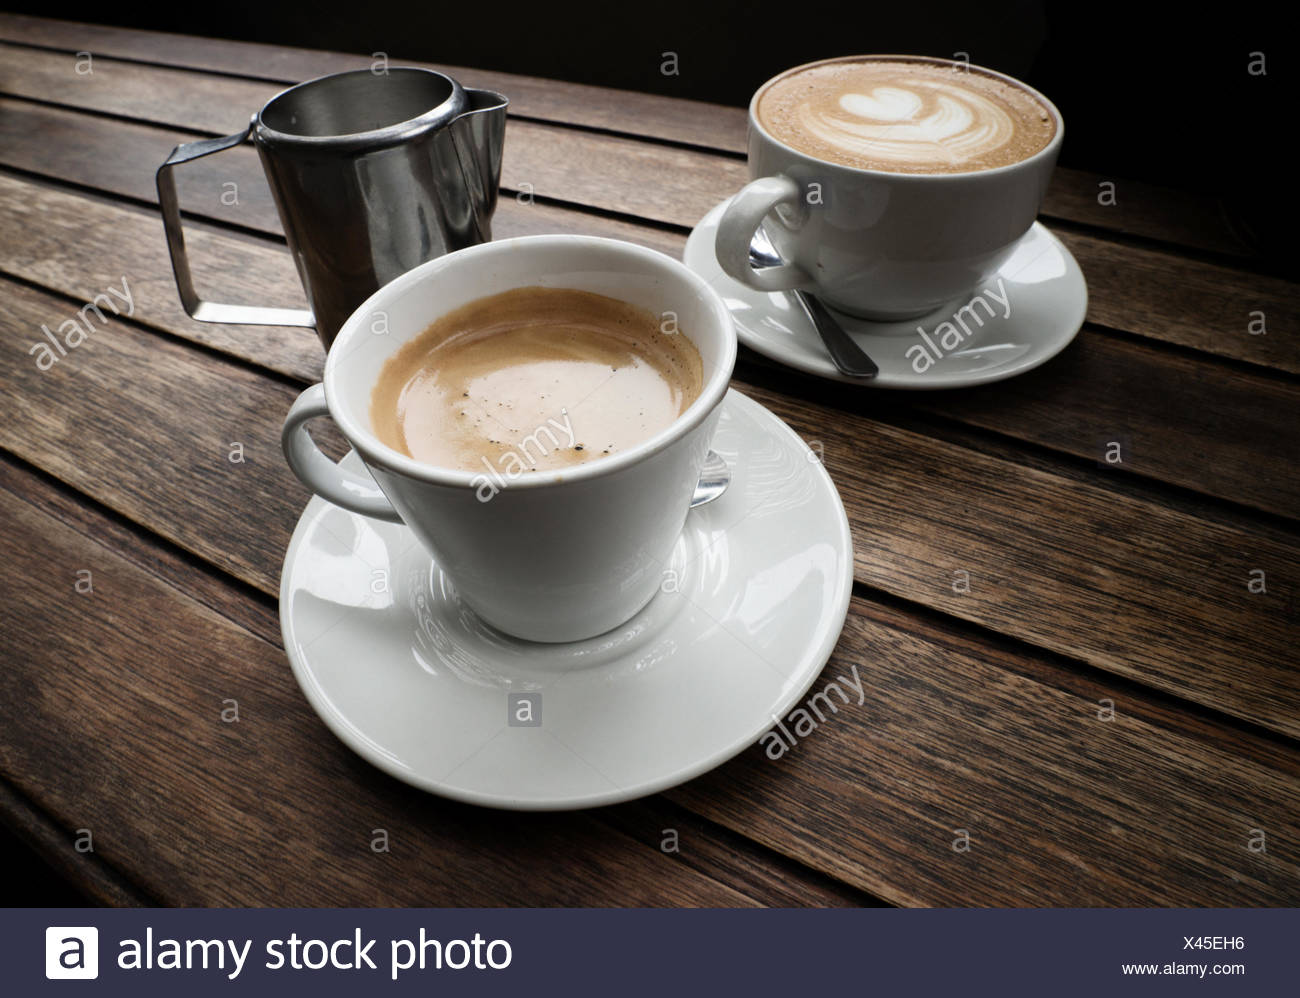 Two cups of coffee on wooden table - Stock Image